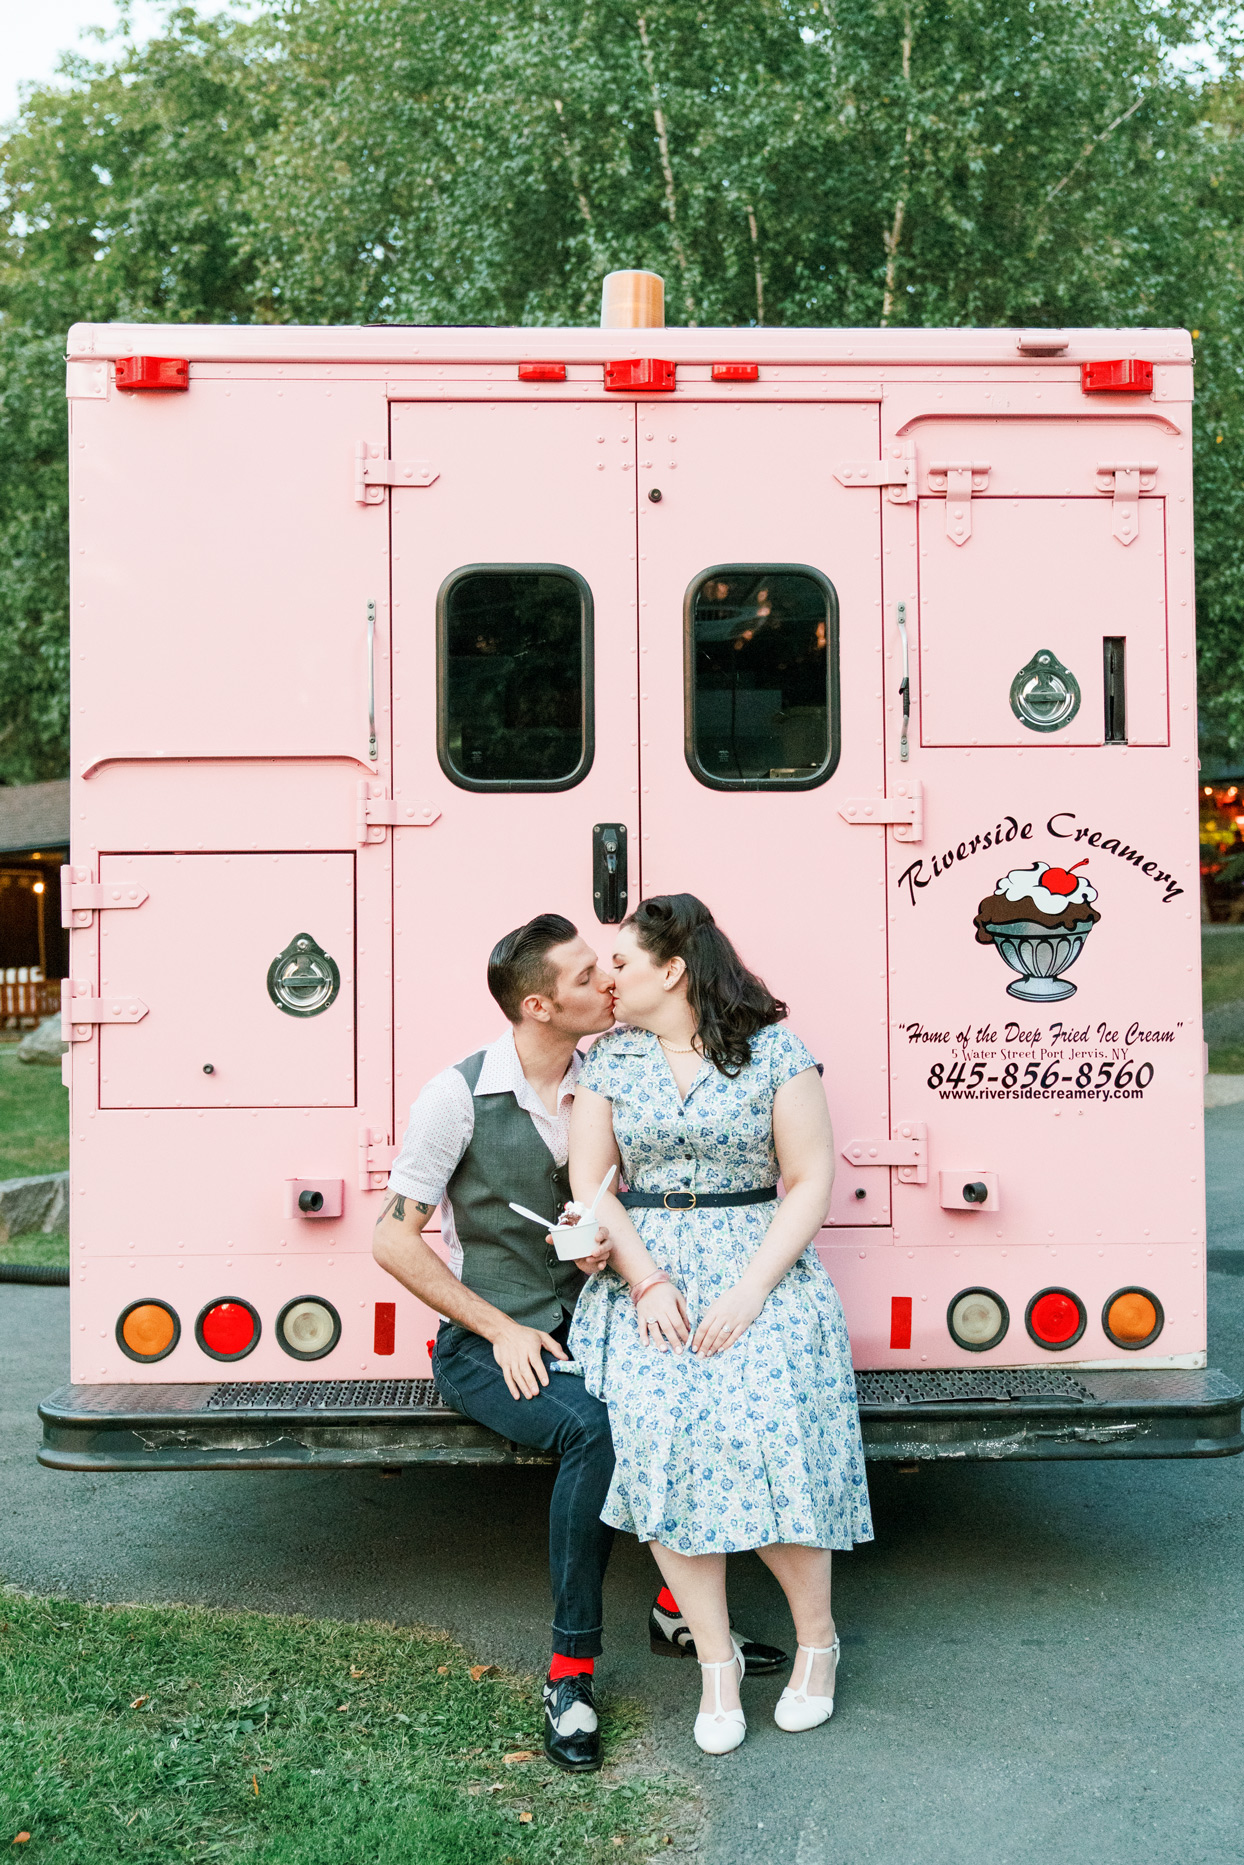 couple wearing vintage attire kissing behind ice cream truck